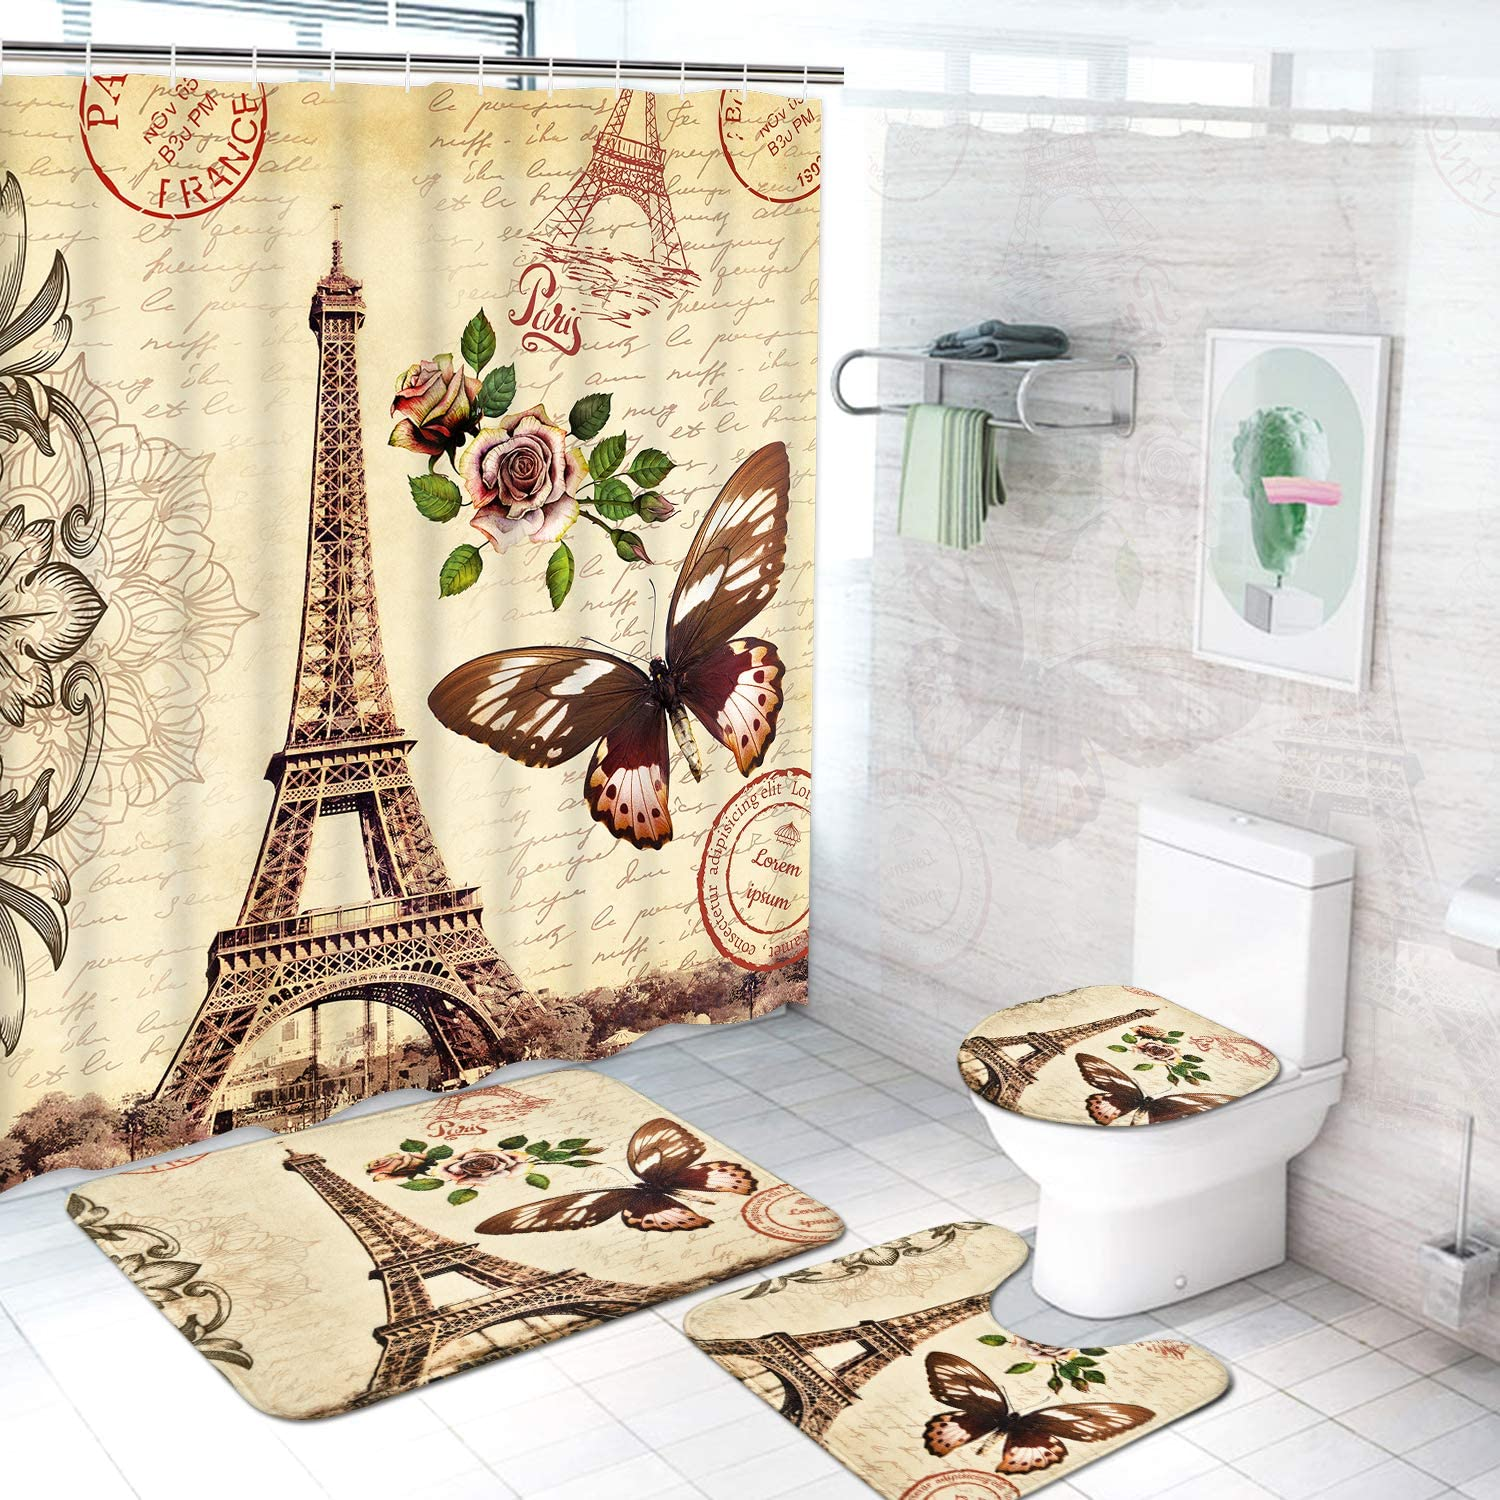 Paris Eiffel Tower Shower Curtain Bath Mat Toilet Cover Rug Bathroom Decor